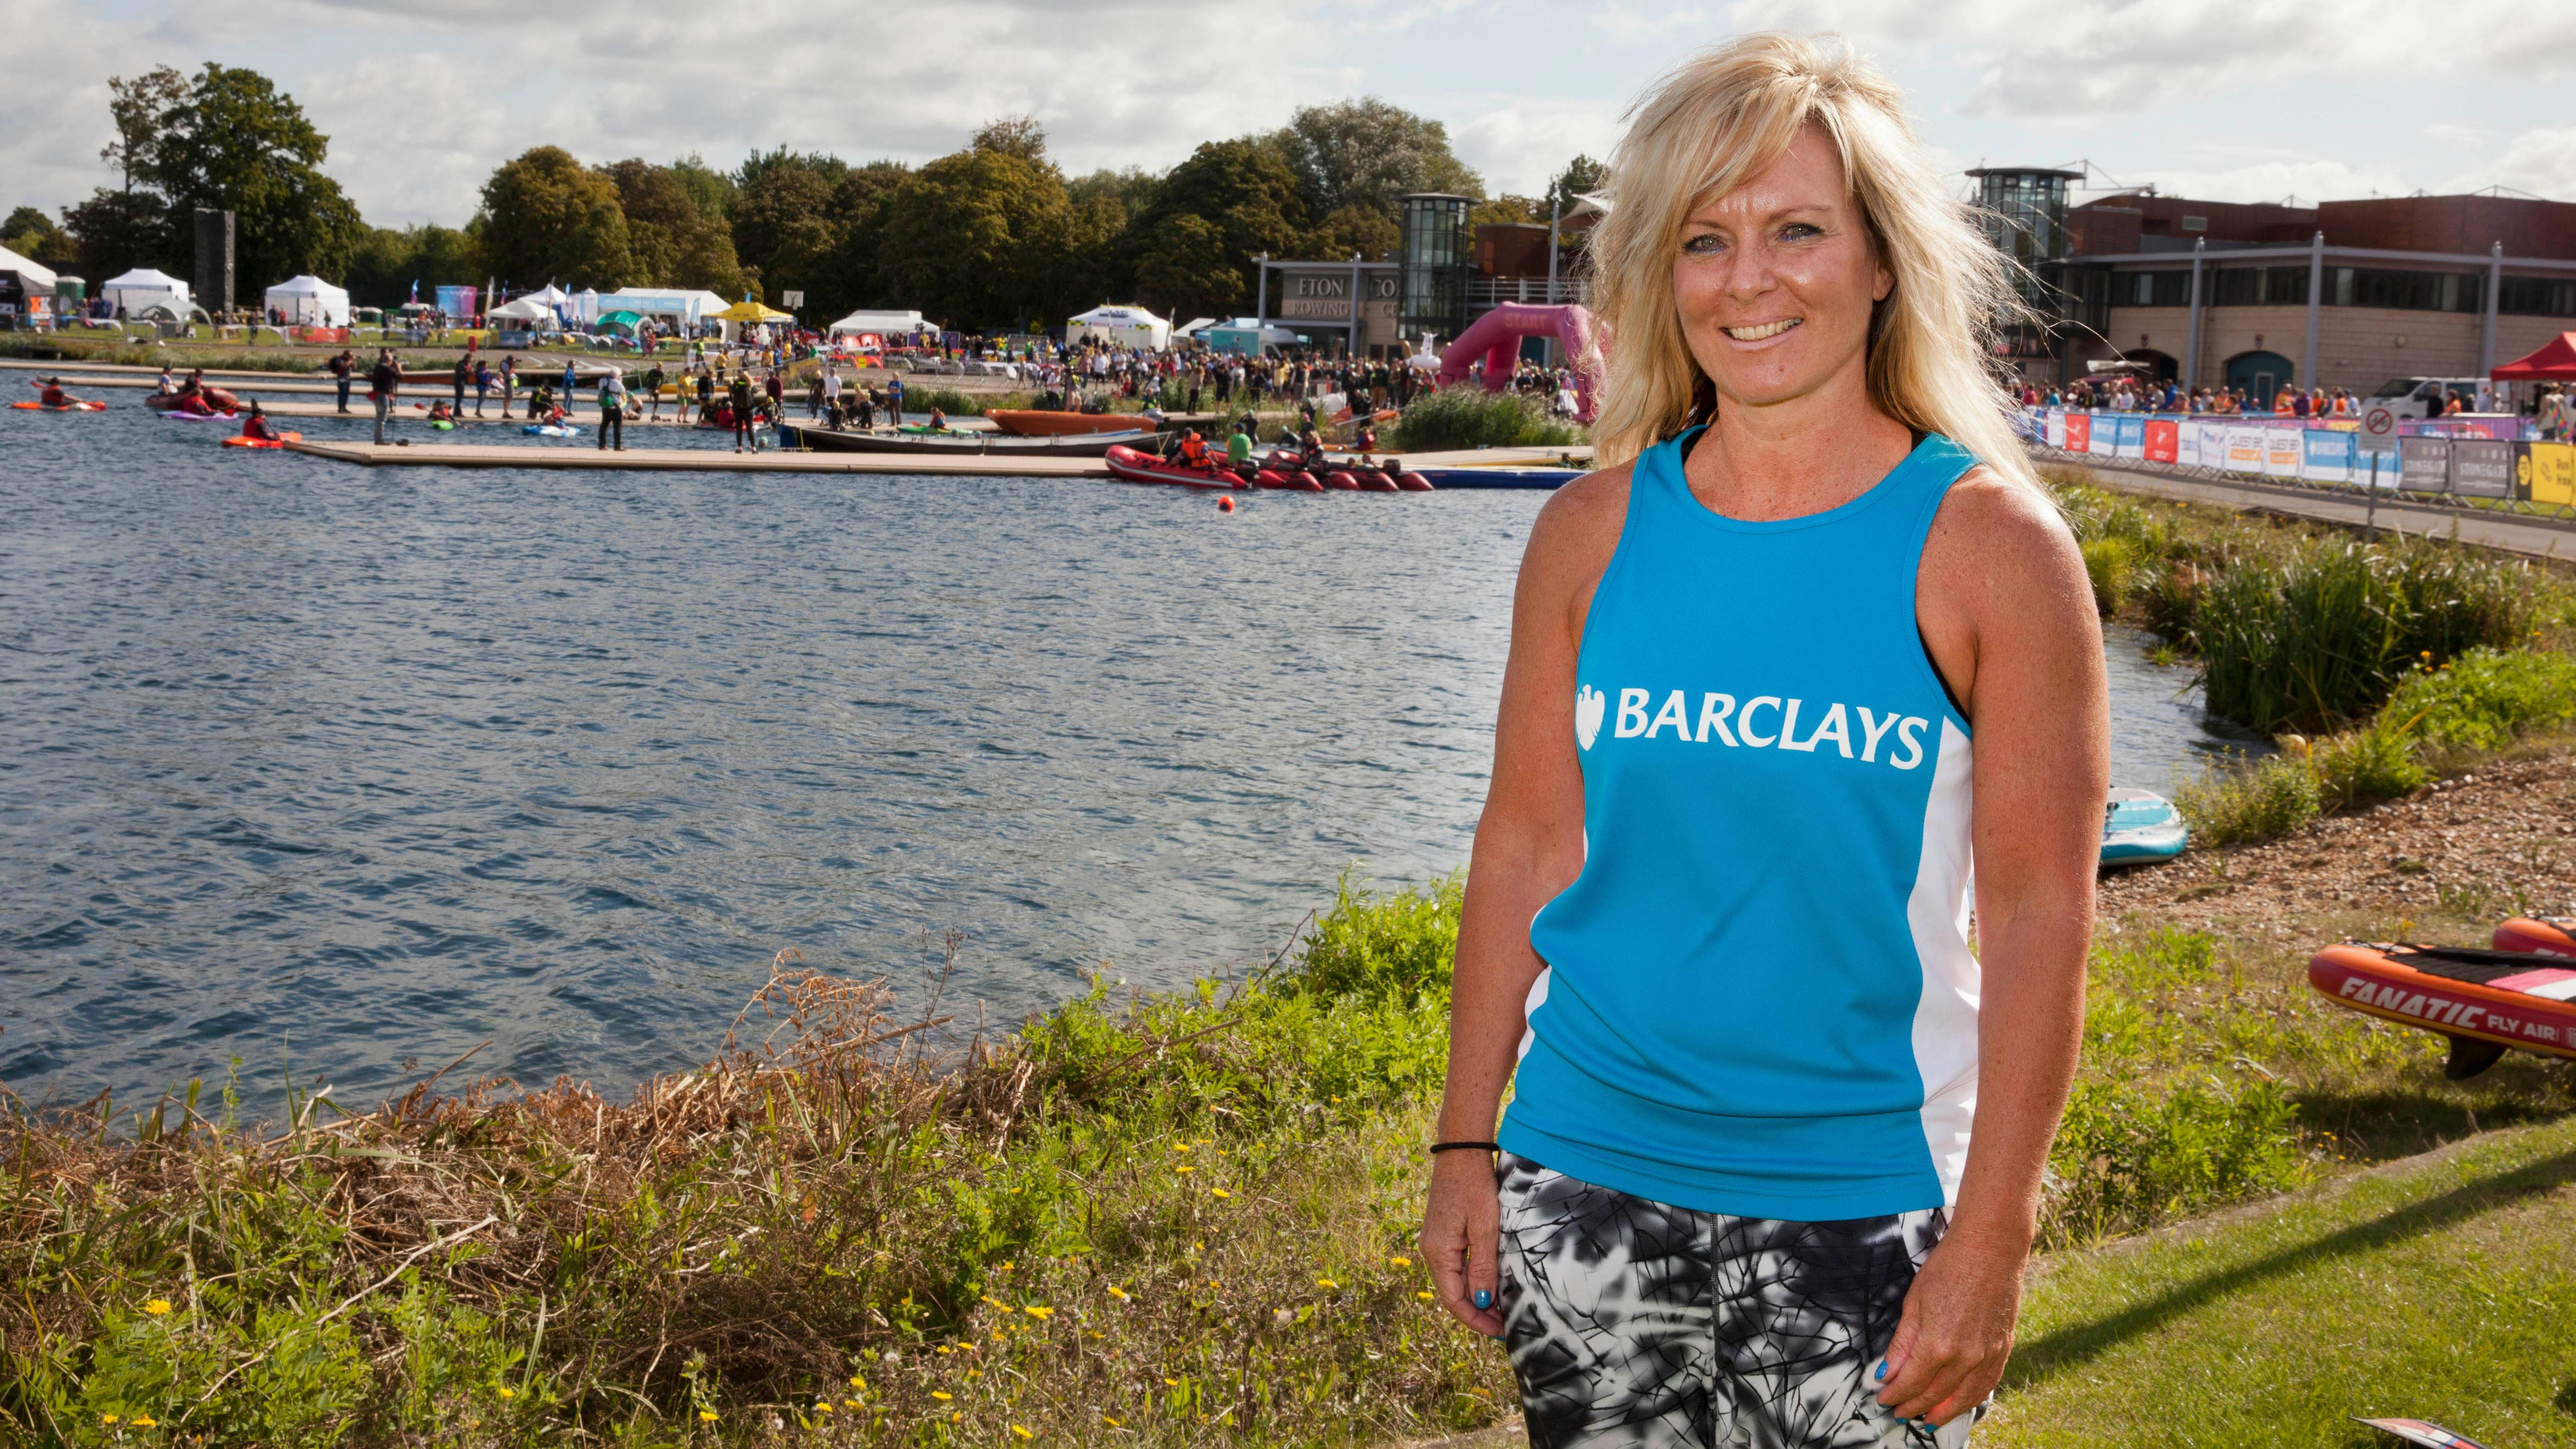 Tracy Cox-Smyth stood by lake